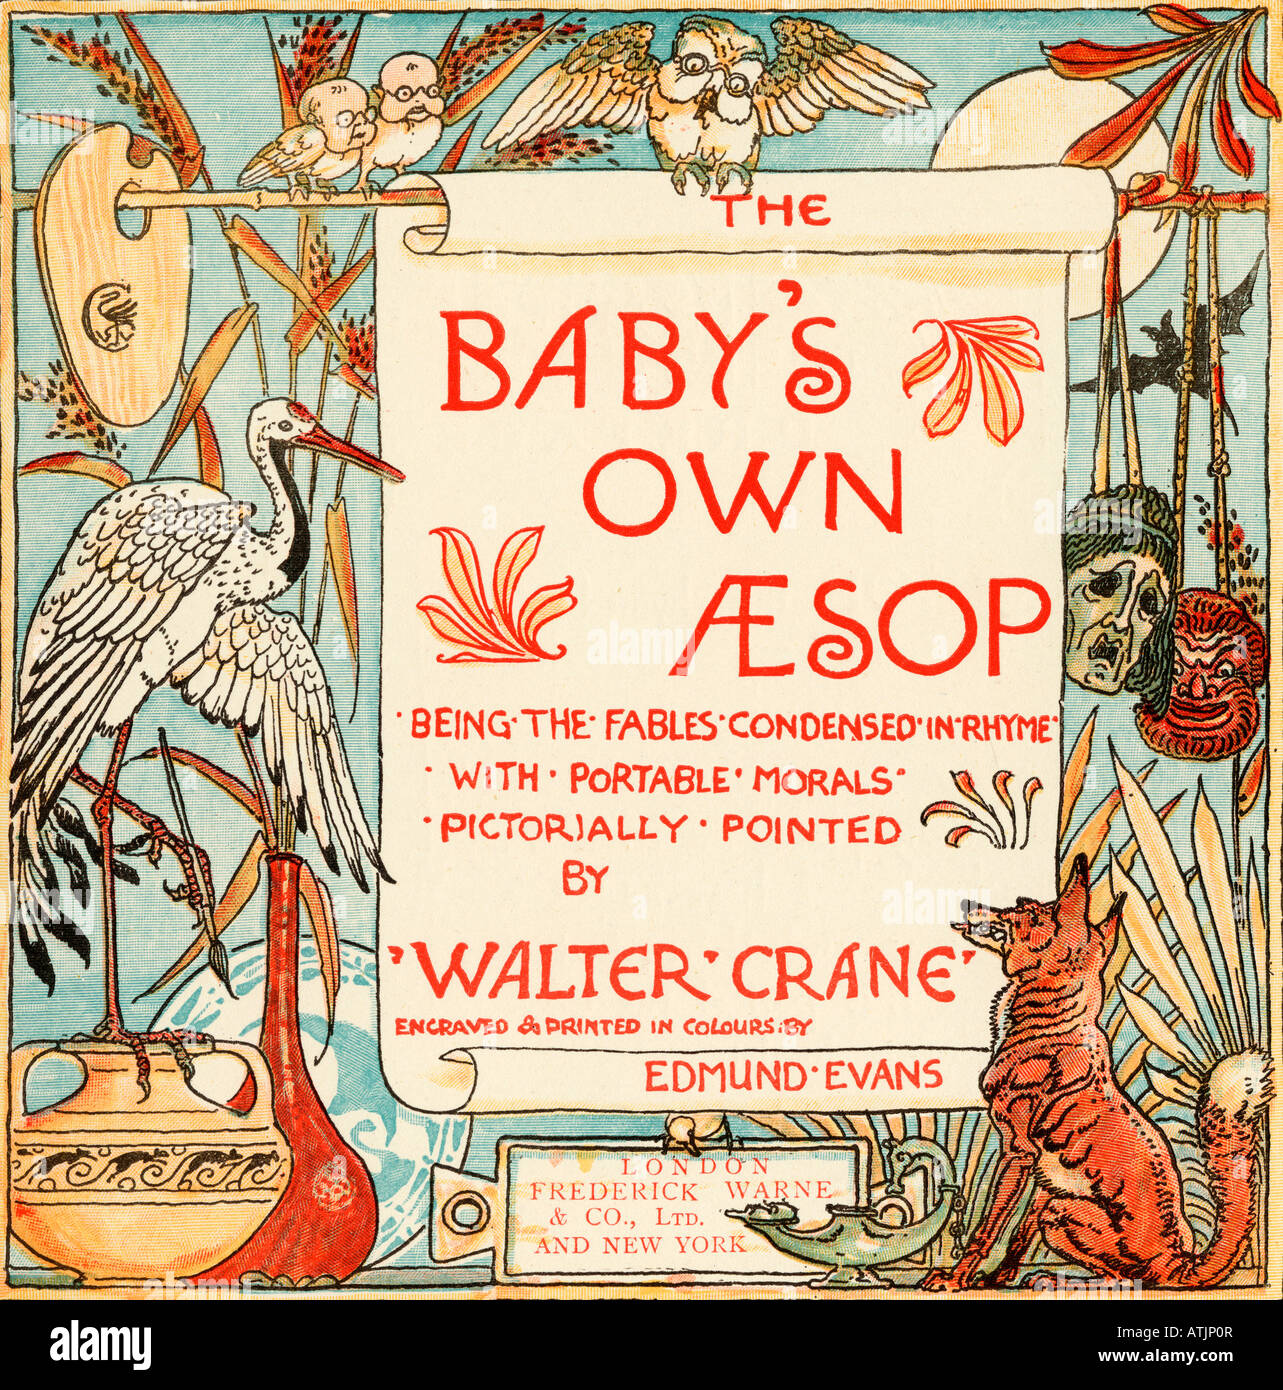 Title Page From the book The Babys Own Aesop by Walter Crane published c1920rom the book Babys Own Aesop by Walter - Stock Image